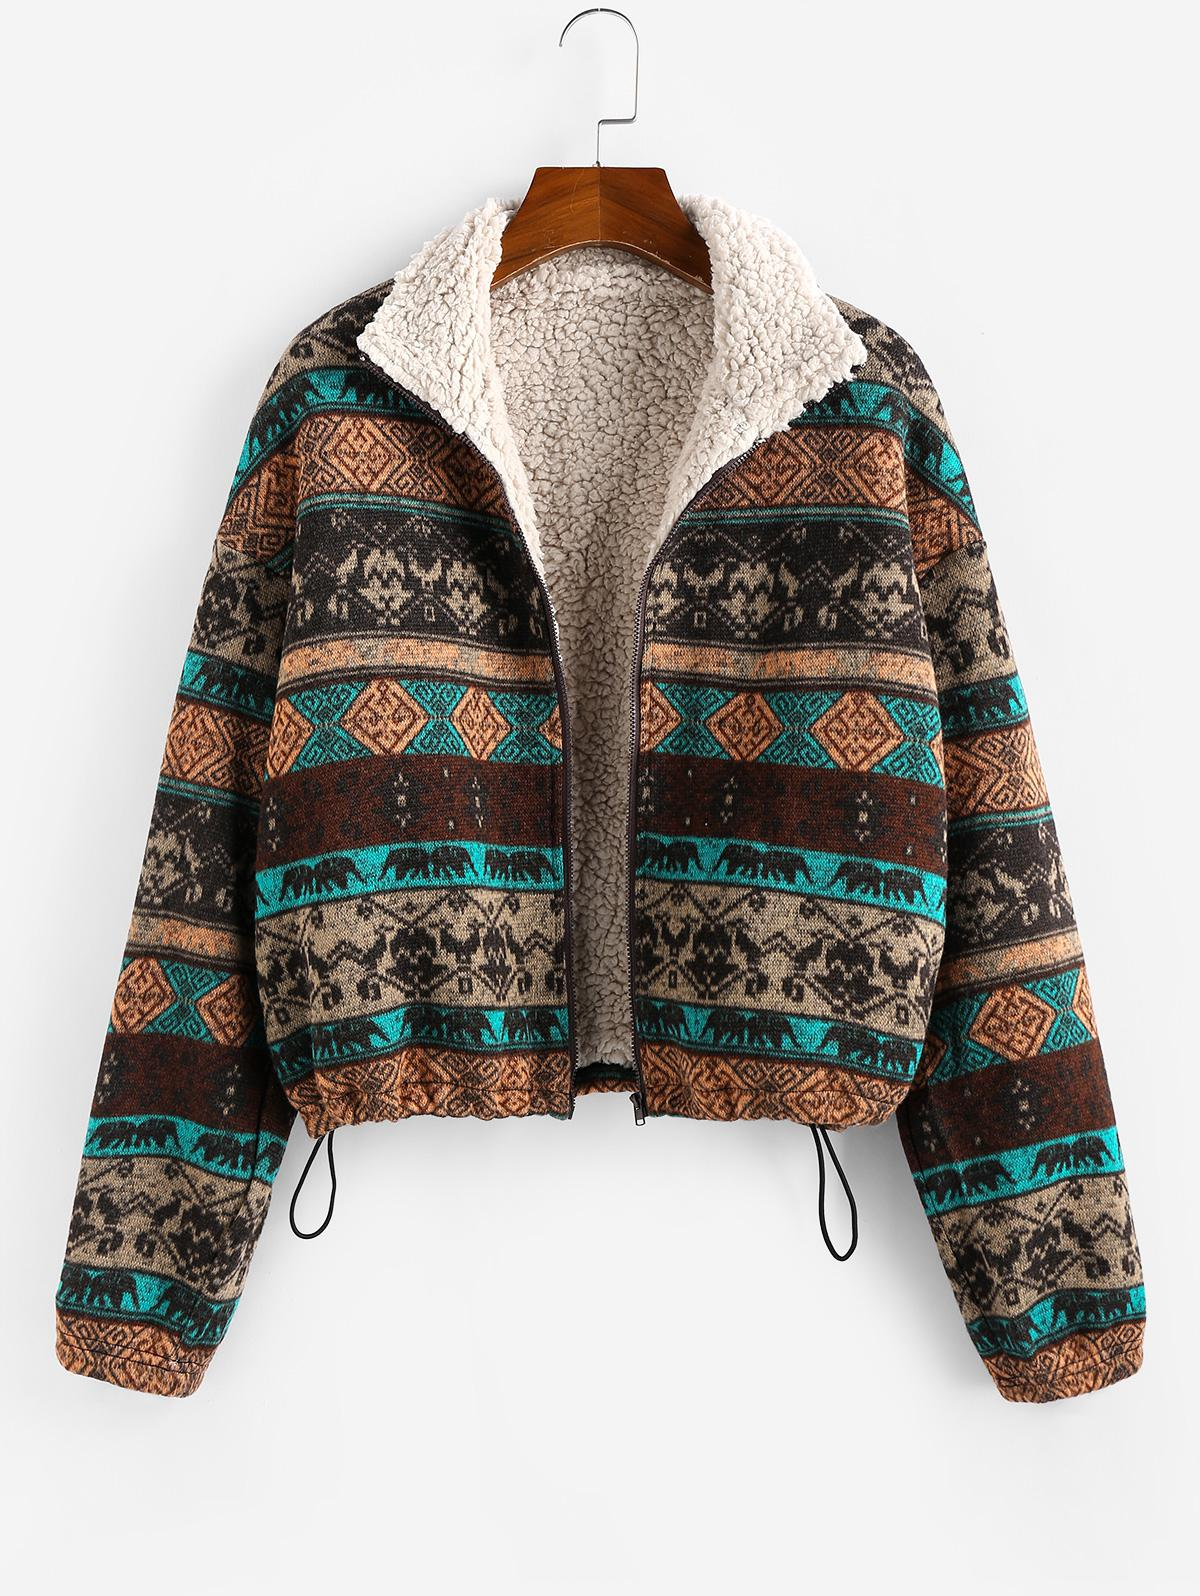 ZAFUL Tribal Print Plaid Faux Fur Lined Jacket